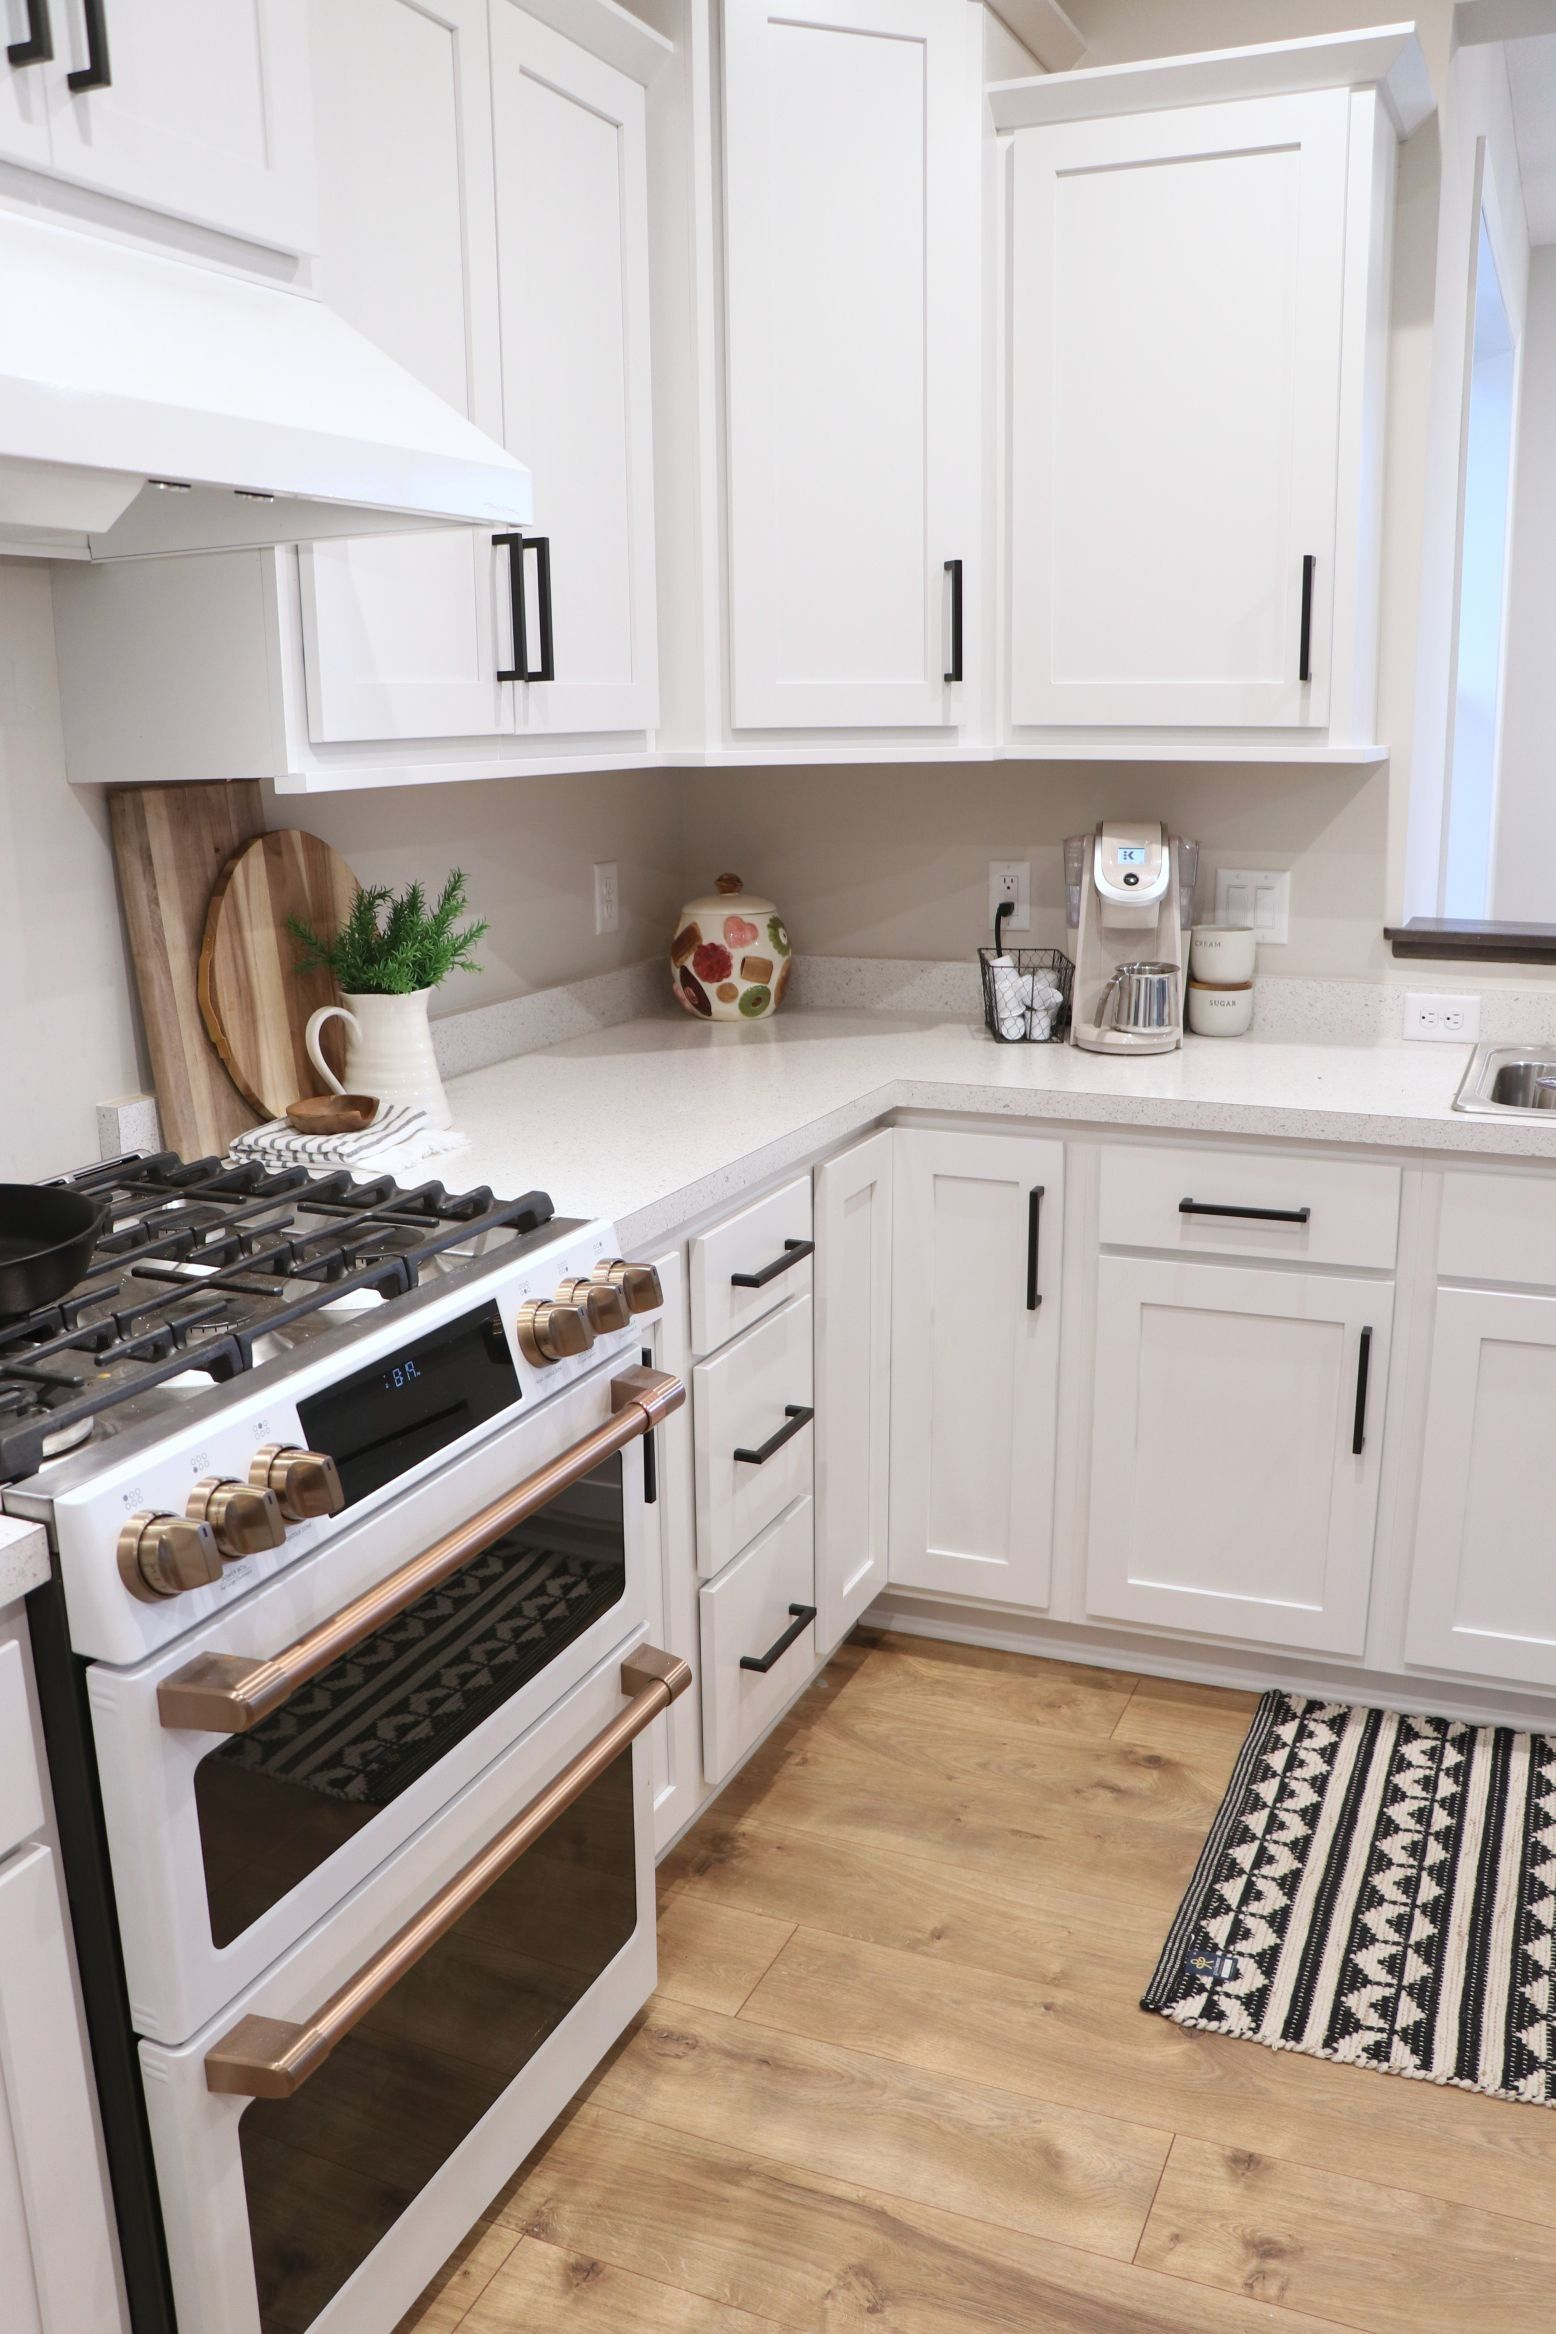 We Love Ge S New Cafe Line In Matte White For Our Kitchen Appliances They Were In 2020 Kitchen Cabinets Grey And White White Shaker Kitchen White Kitchen Appliances